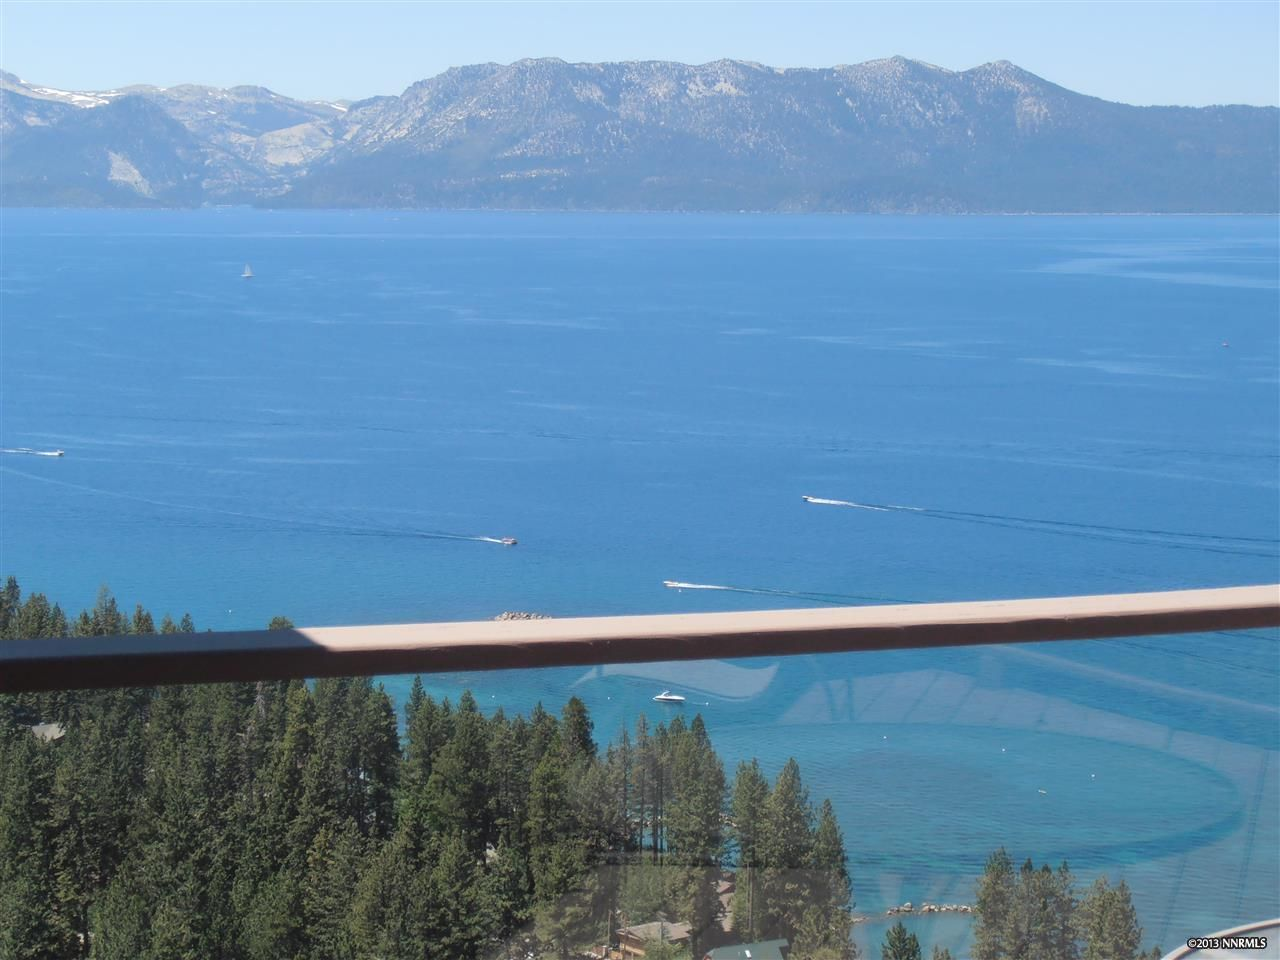 1350 Winding Way, Zephyr Cove, NV Luxury Real Estate Property - MLS# 130010939 - Coldwell Banker Previews International